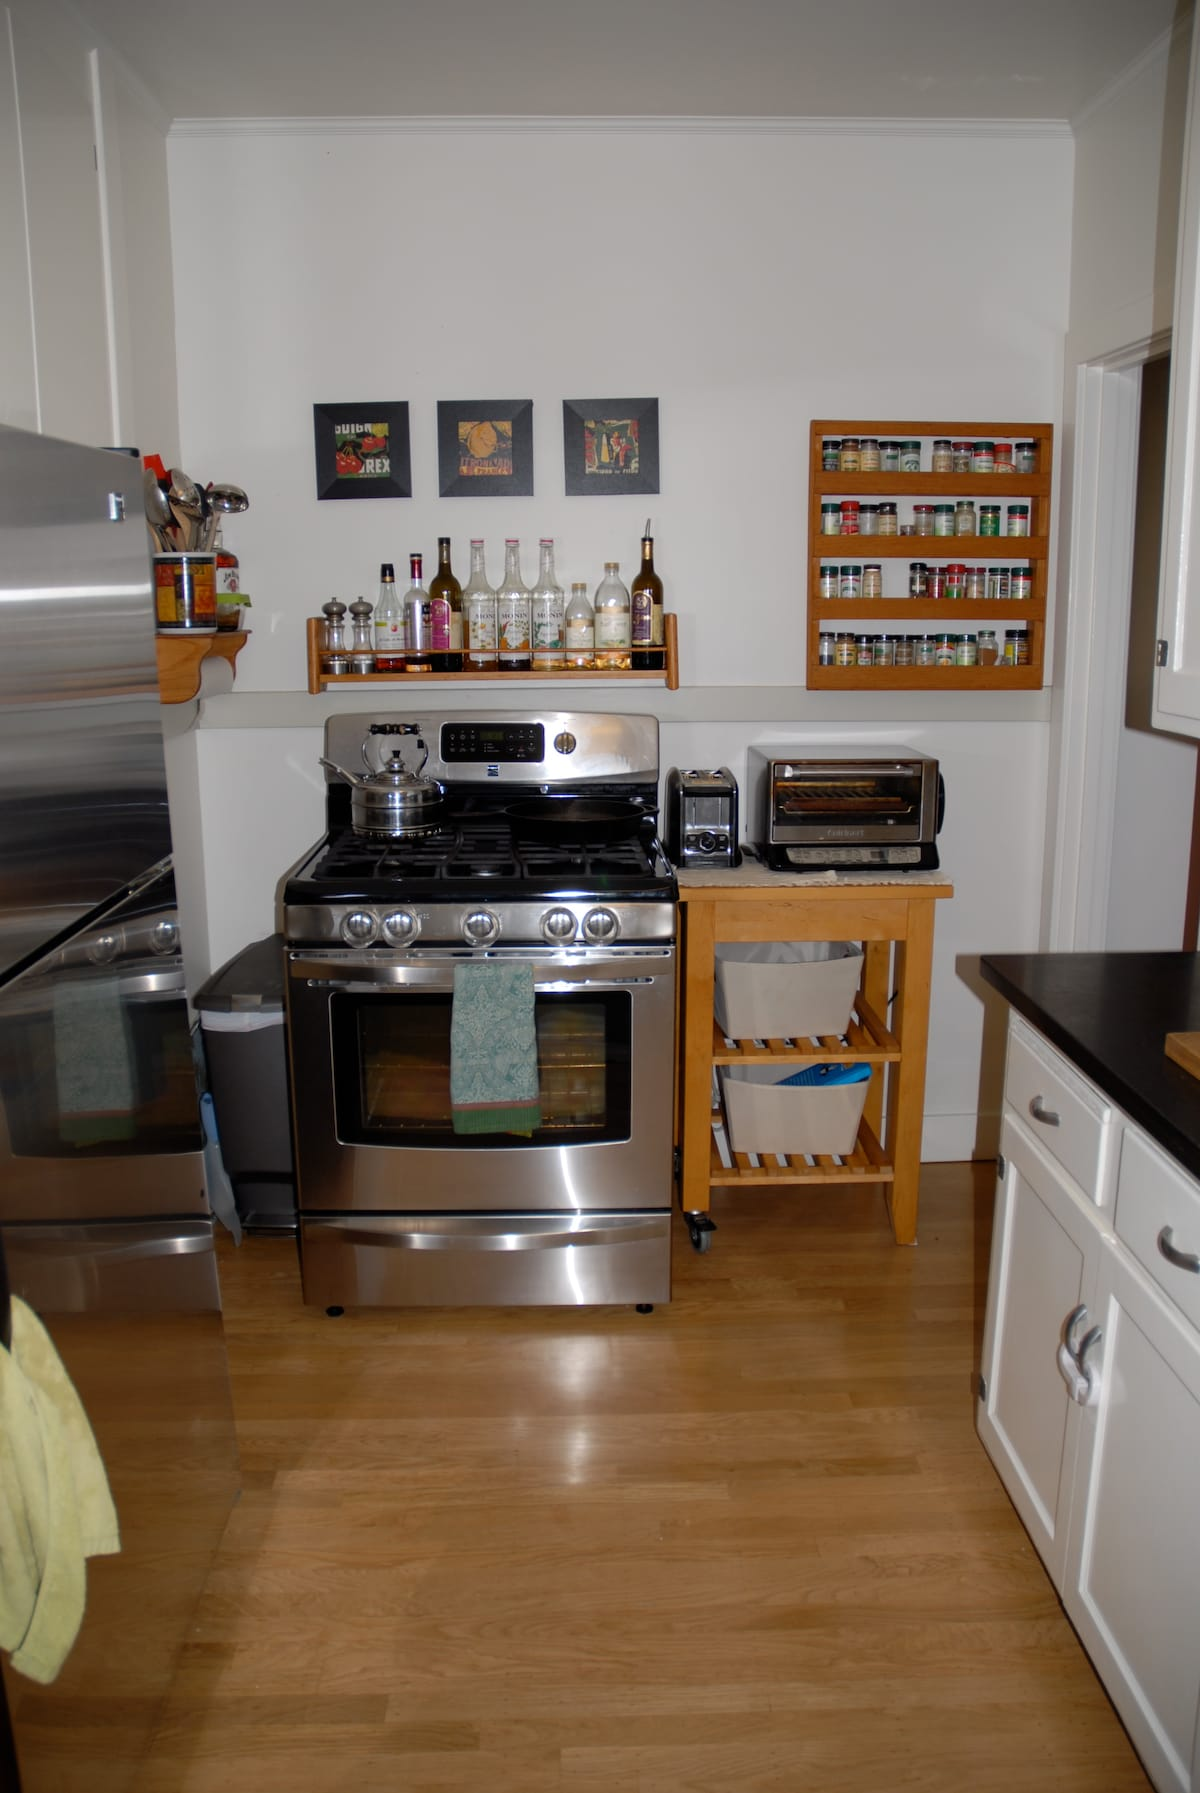 Fully stocked/equipped kitchen